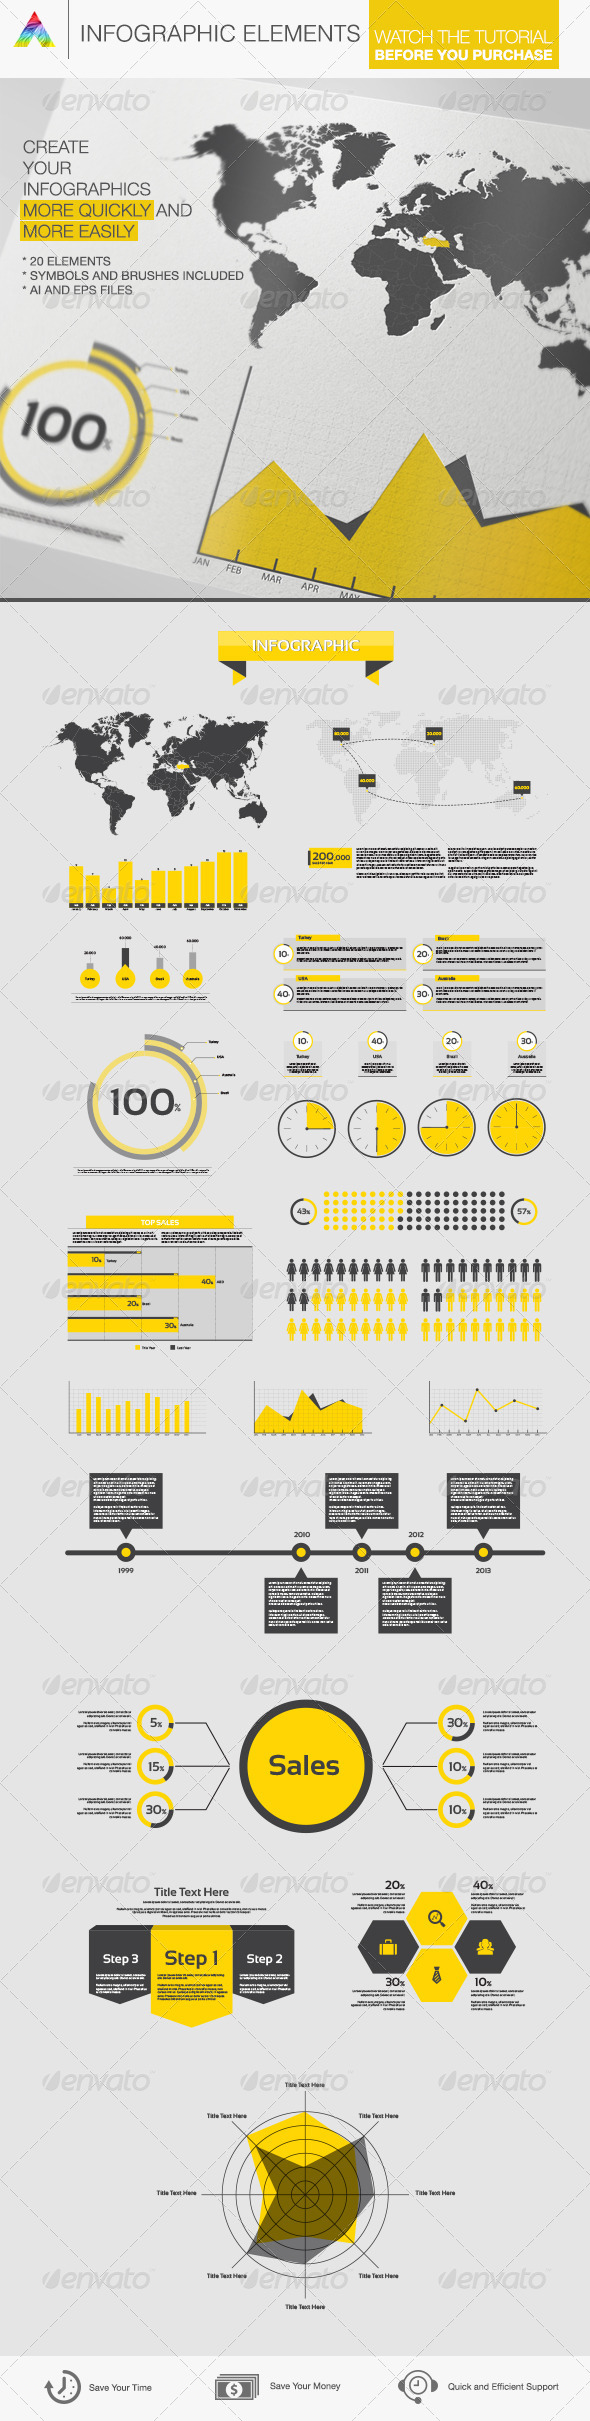 GraphicRiver Infographic Elements 6171381